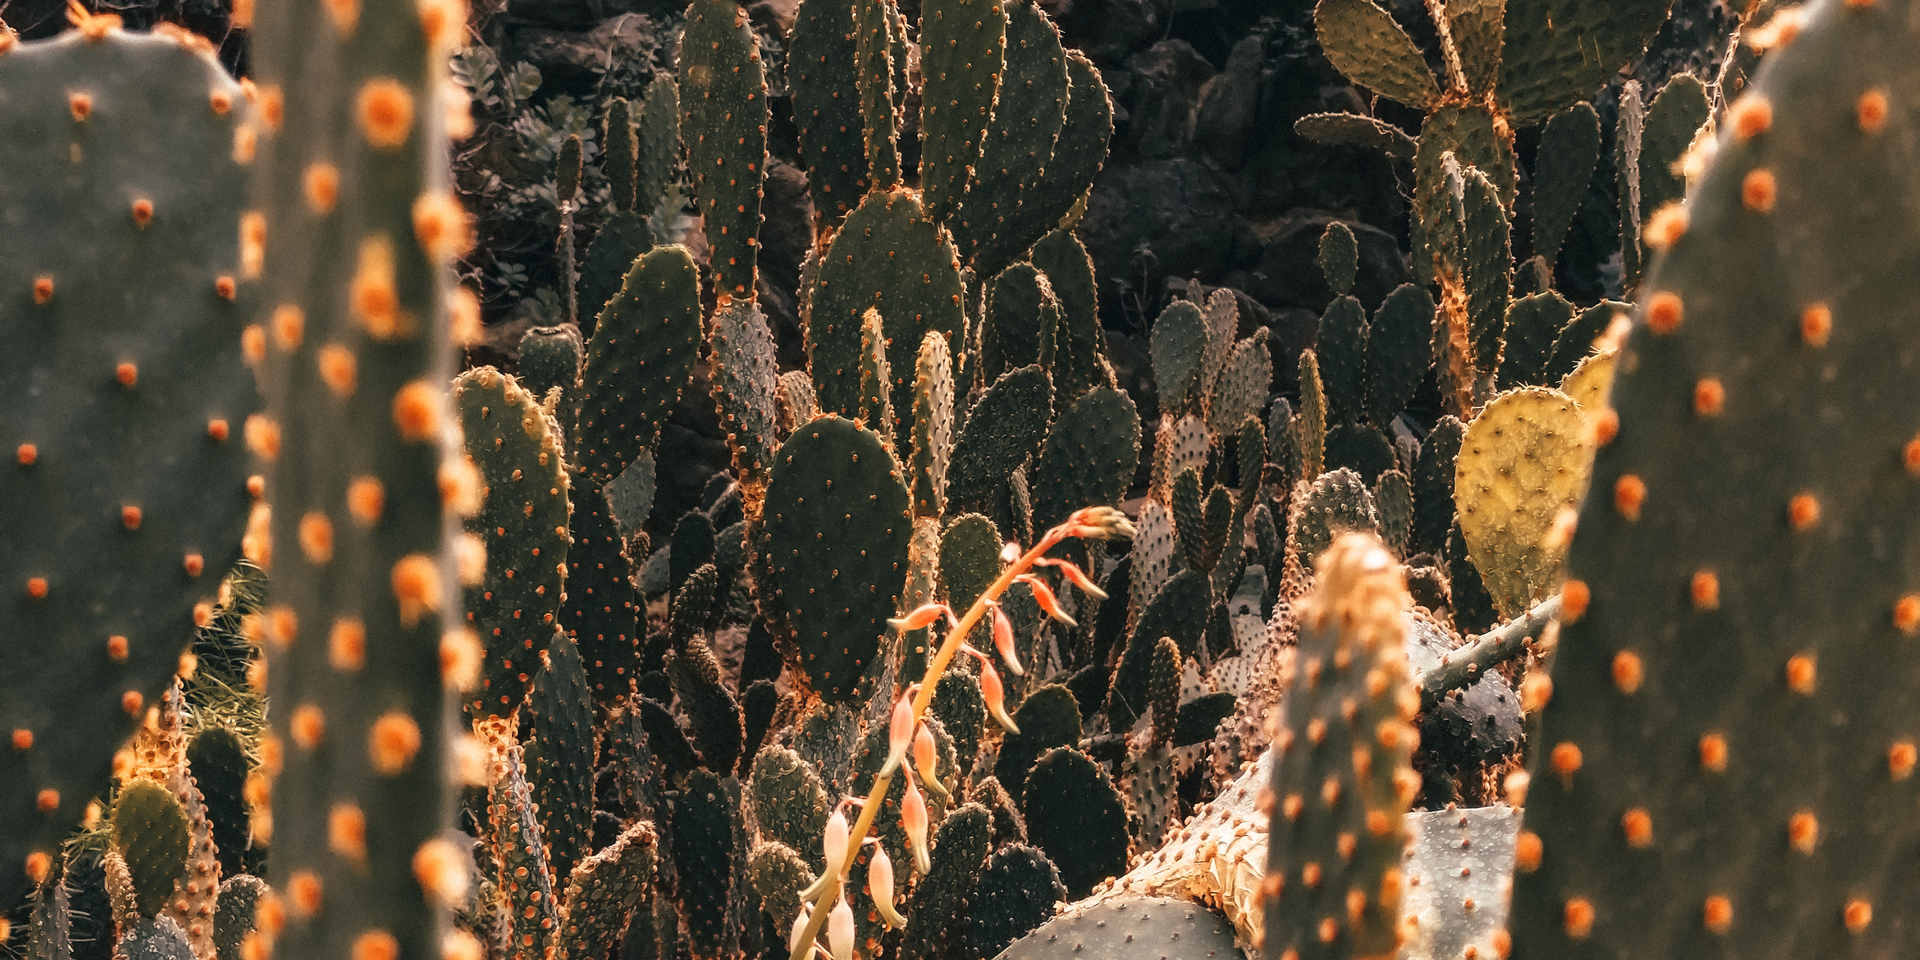 brown-cactus-plants-3779470.jpg